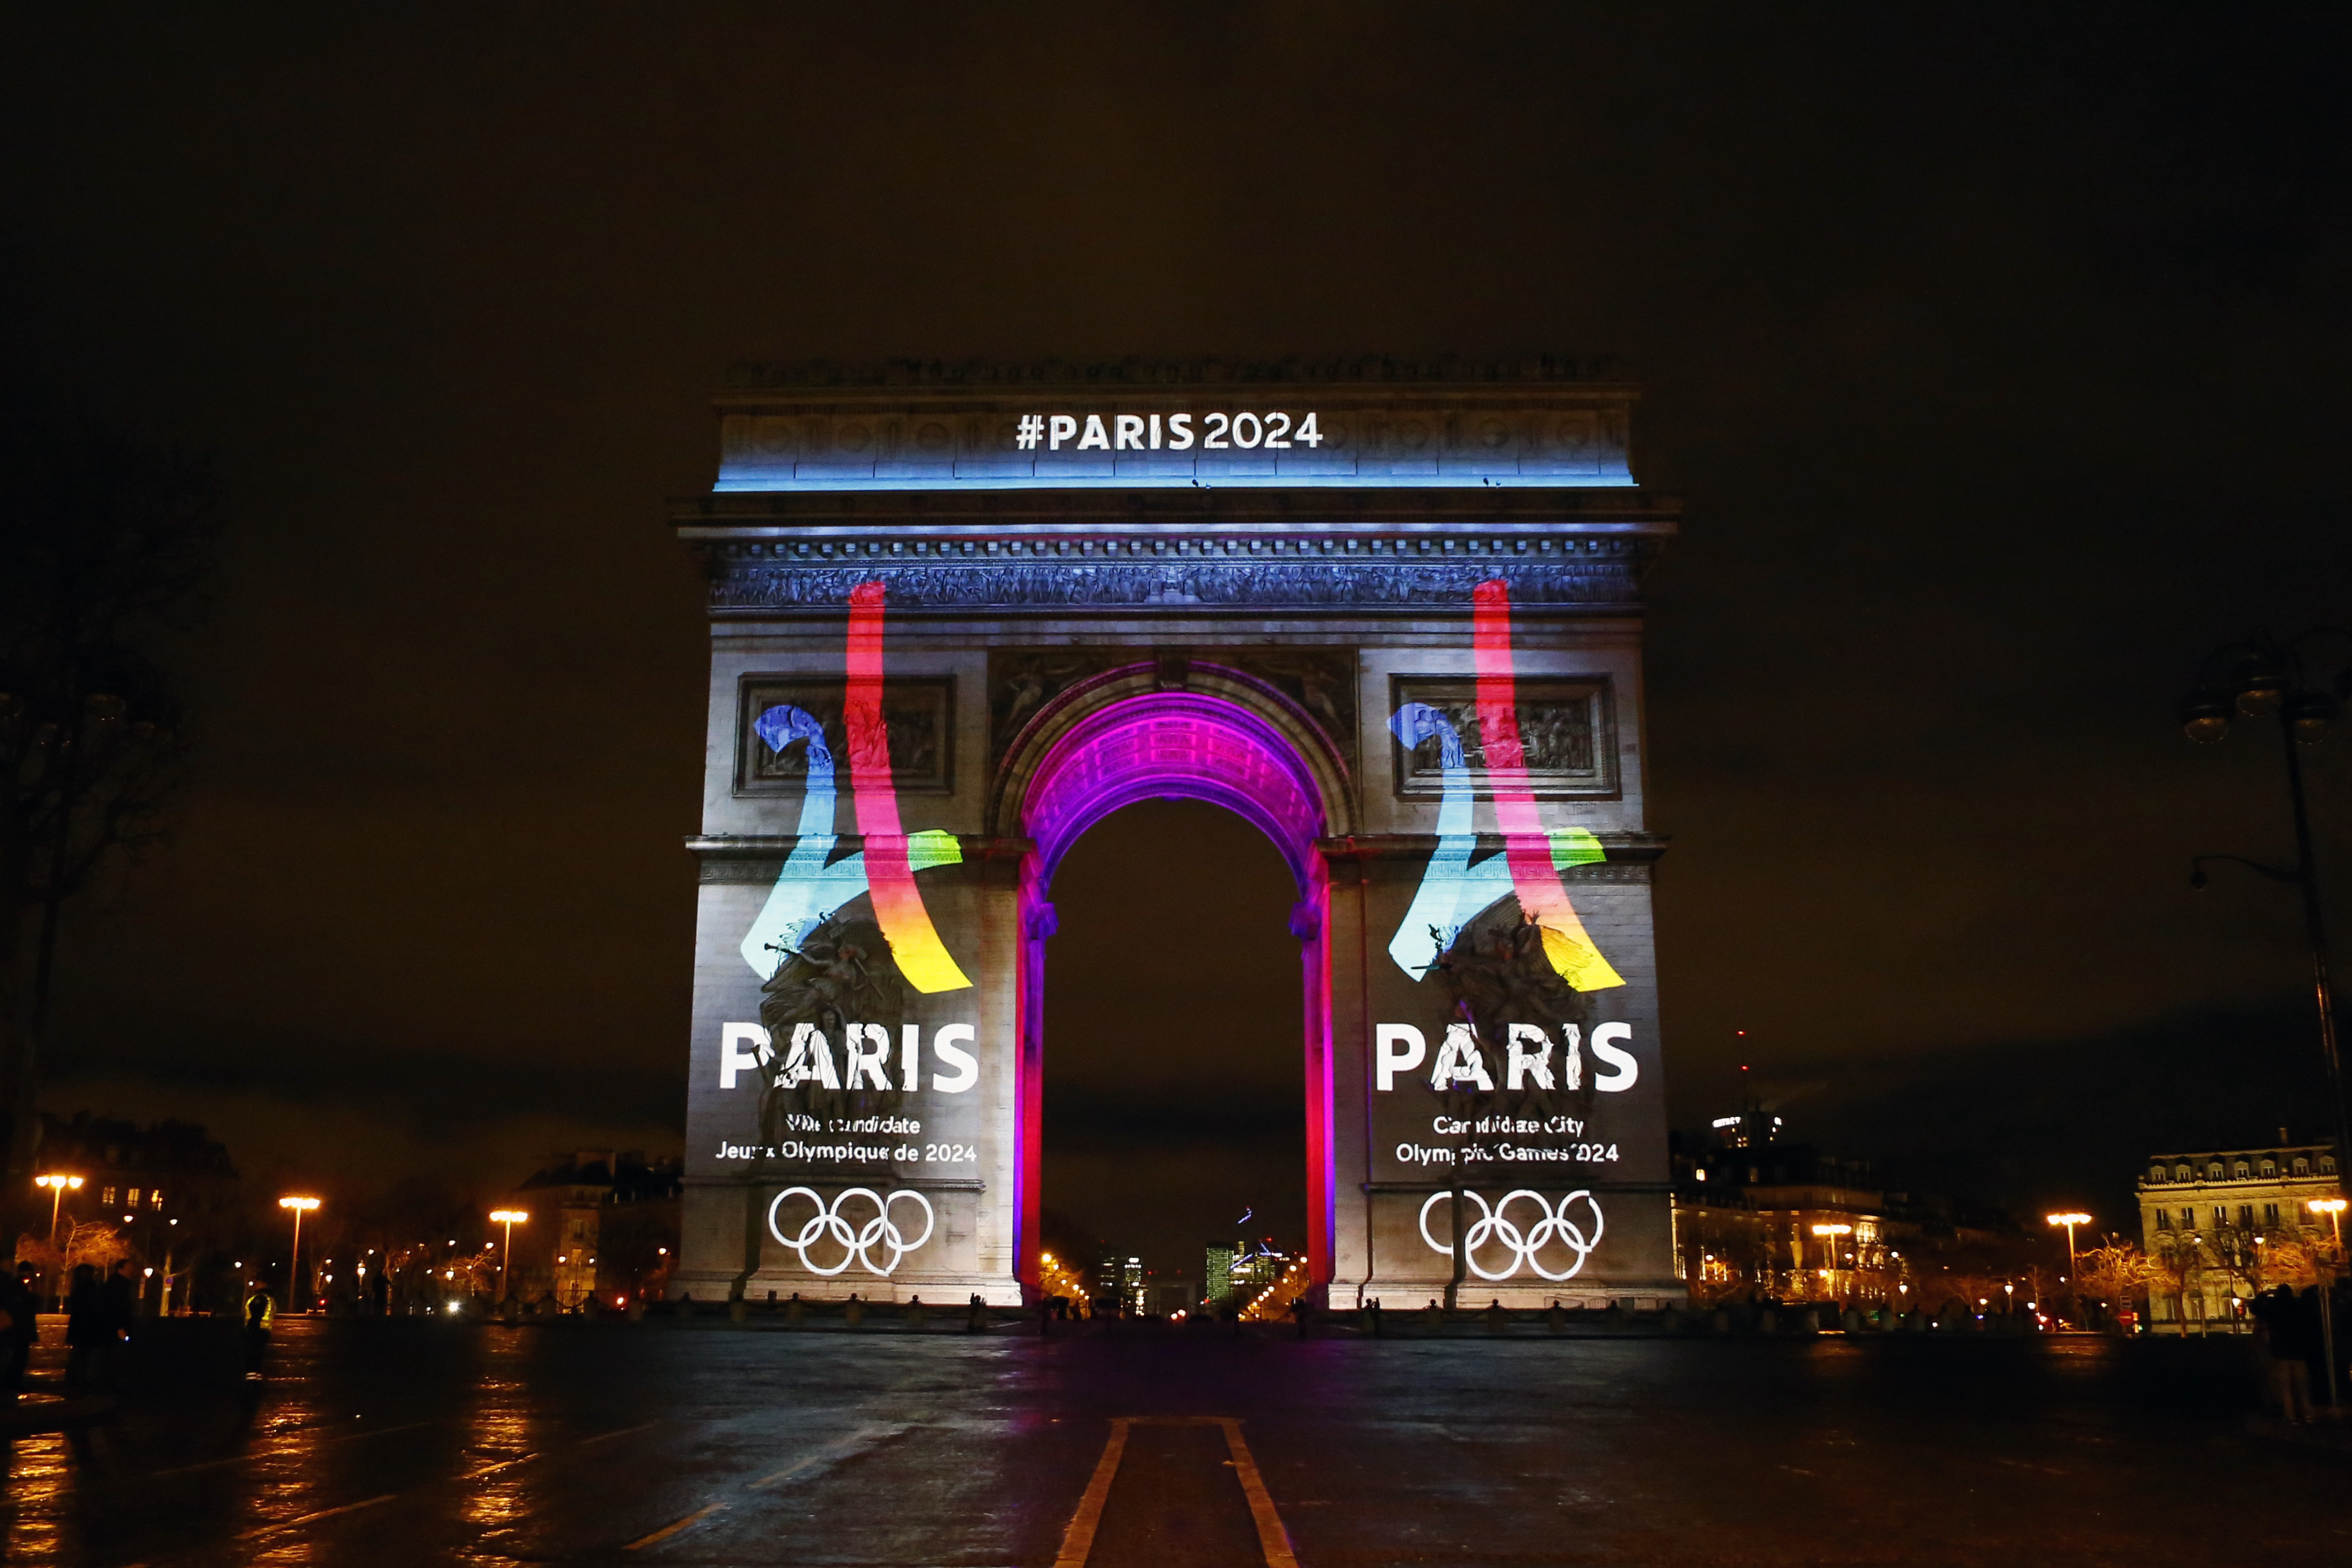 FILE - A Tuesday, Feb. 9, 2016 photo from files showing the Eiffel Tower-shaped logo for the Paris 2024 bid being unveiled on The Arc of Triomphe on the Champs Elysees in Paris. The head of France's Olympic committee said Wednesday, April 27, 2016, that h